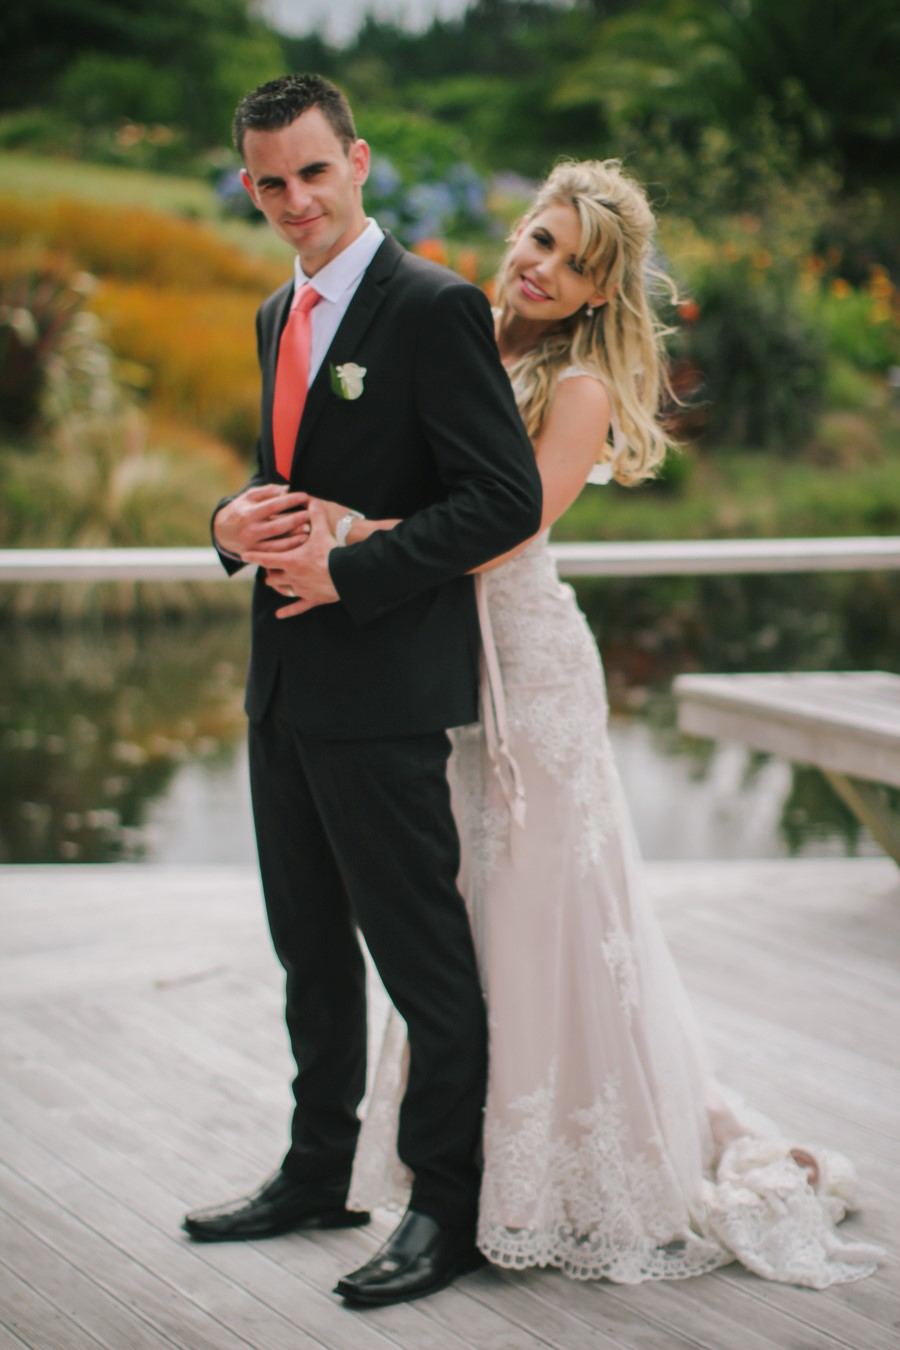 silverdale_wedding_nz_photographer-164